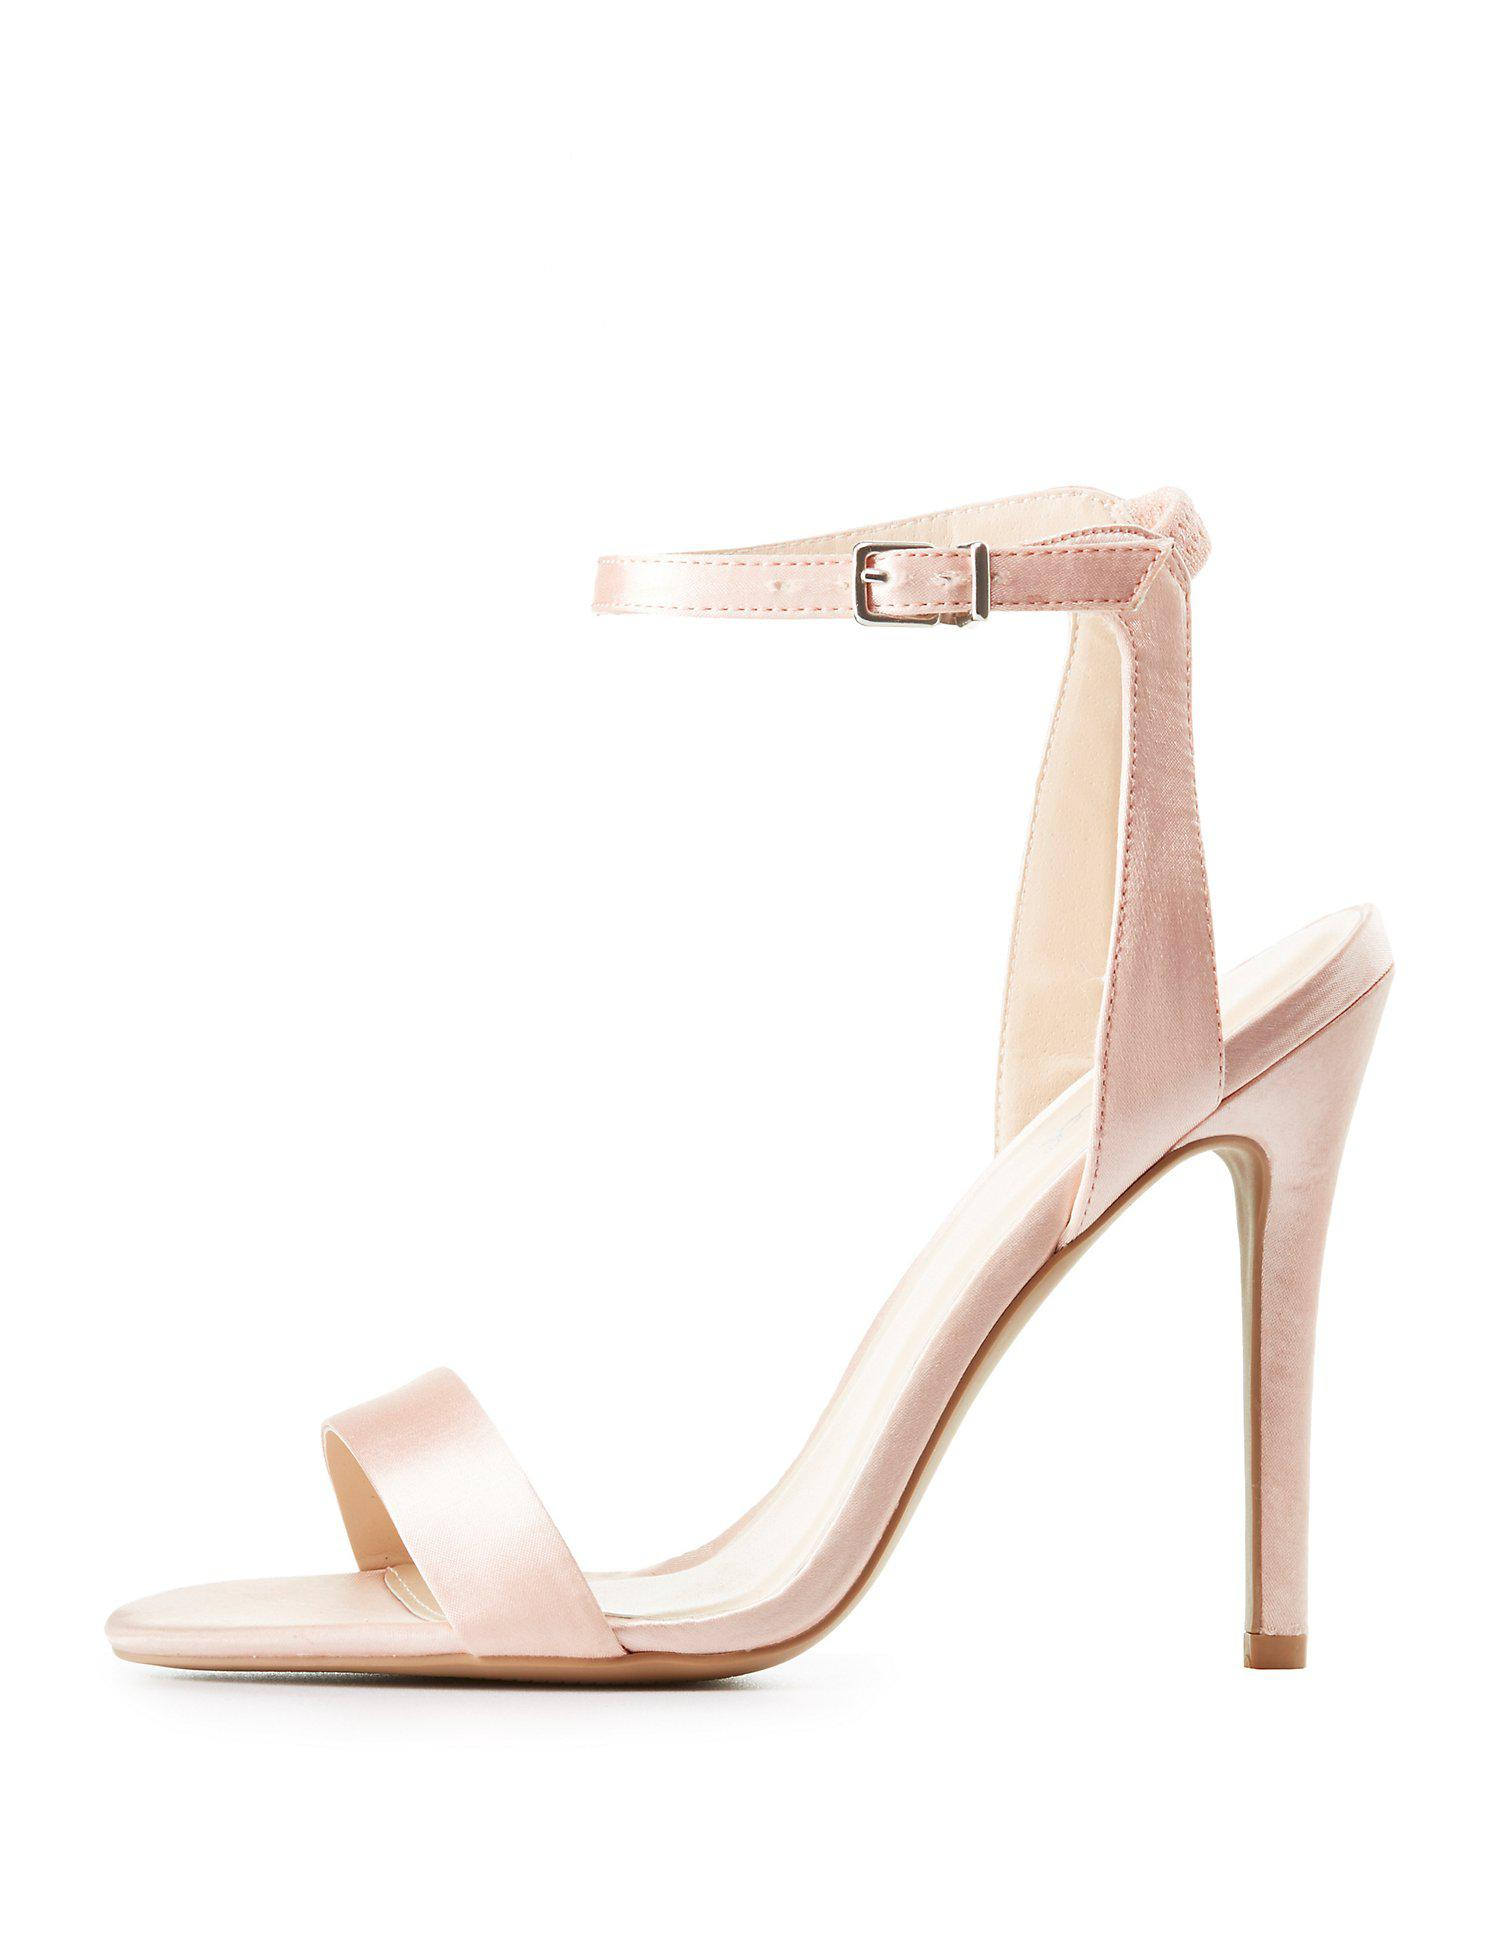 eb0344b01d05 Lyst - Charlotte Russe Qupid Satin Ankle Strap Sandals in Pink